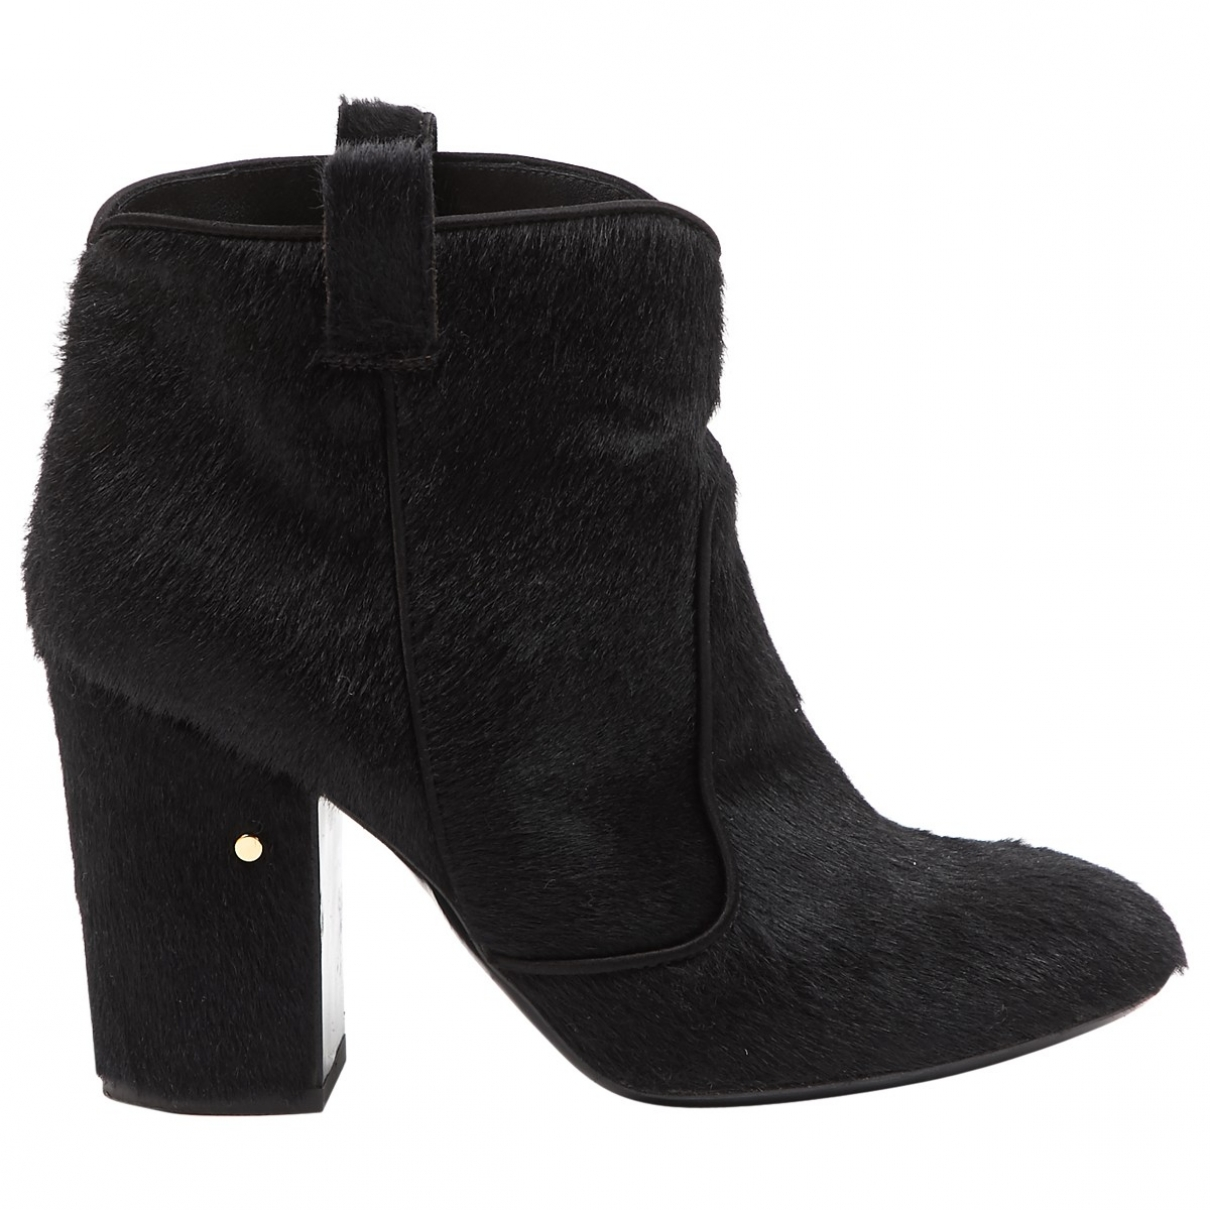 Laurence Dacade \N Black Pony-style calfskin Ankle boots for Women 36 EU